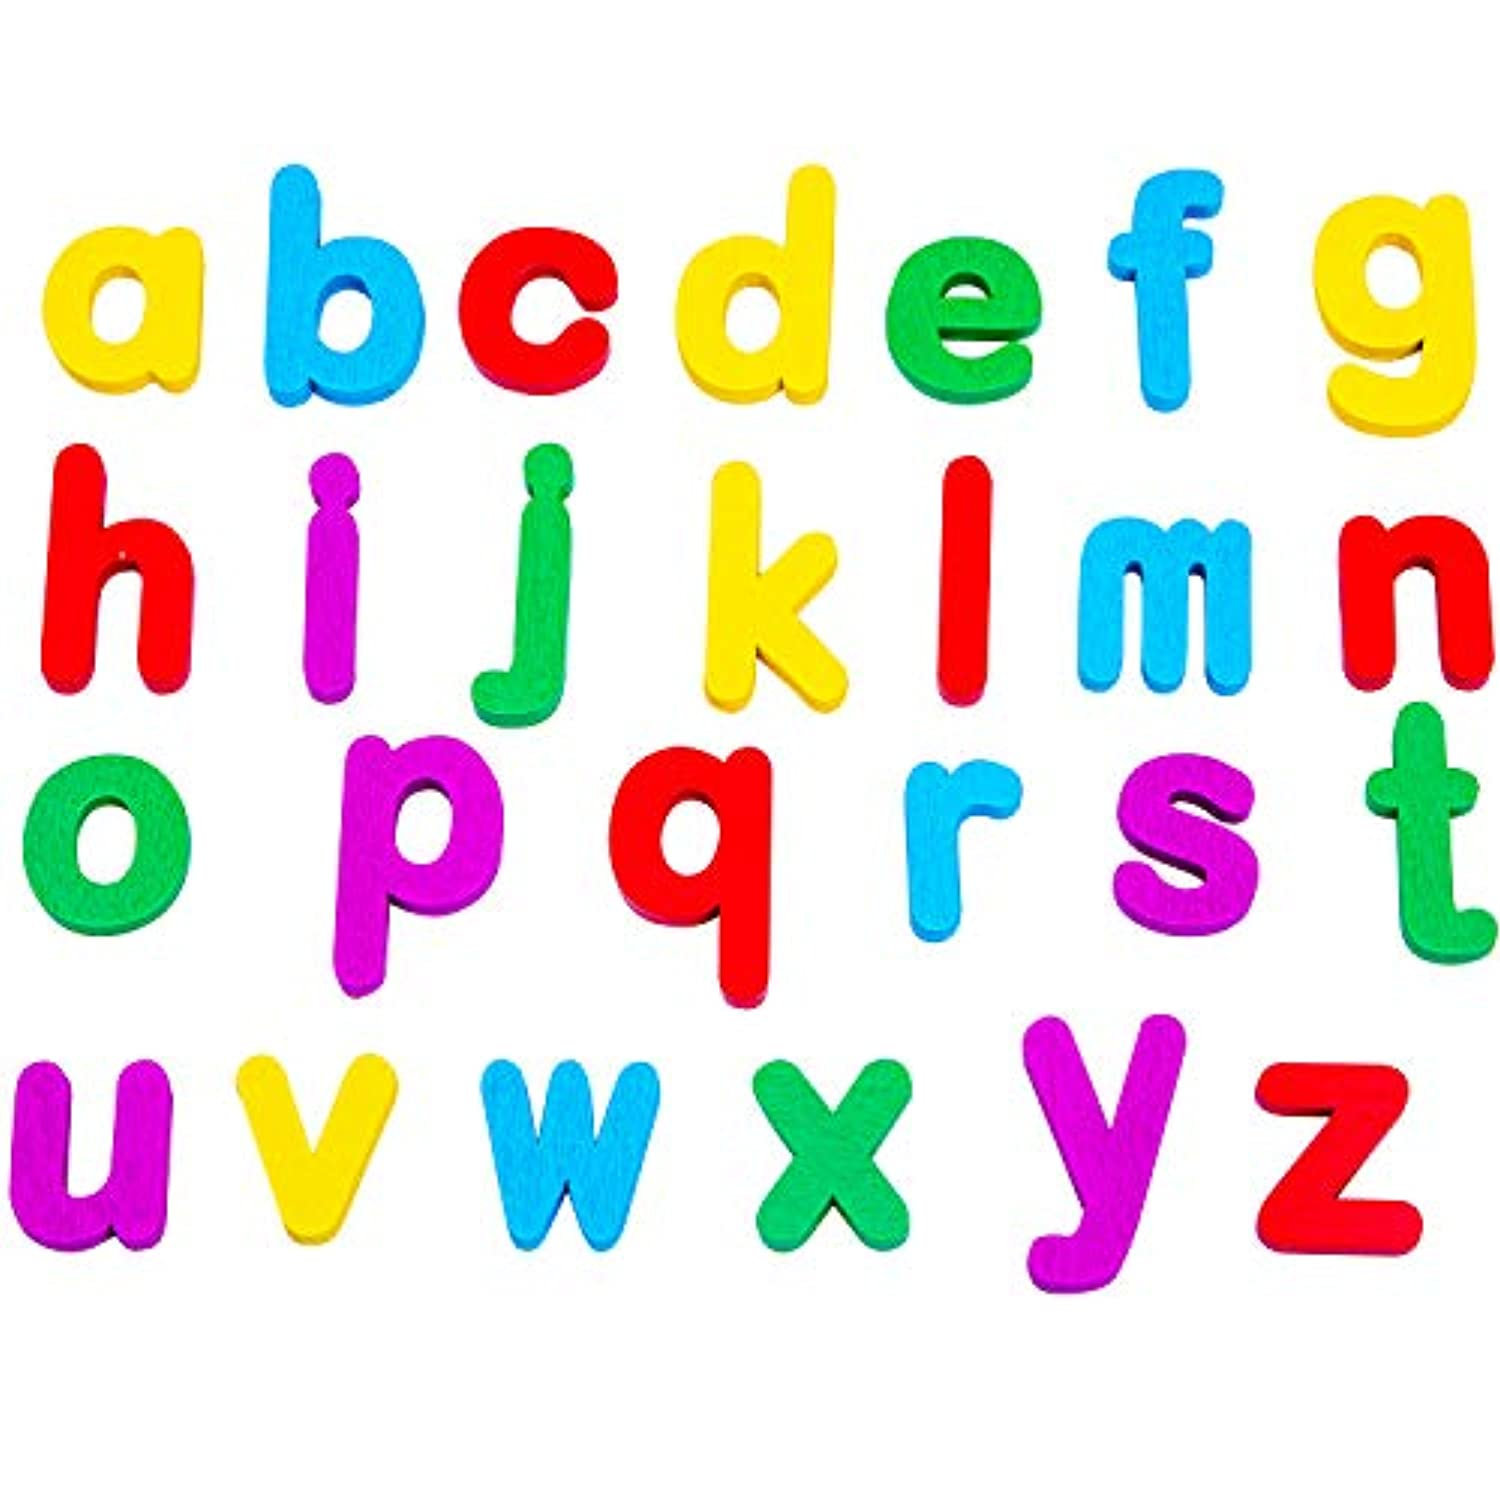 Jaques of London Fun Spelling GameEducational Toys for 3 4 5 Year Olds